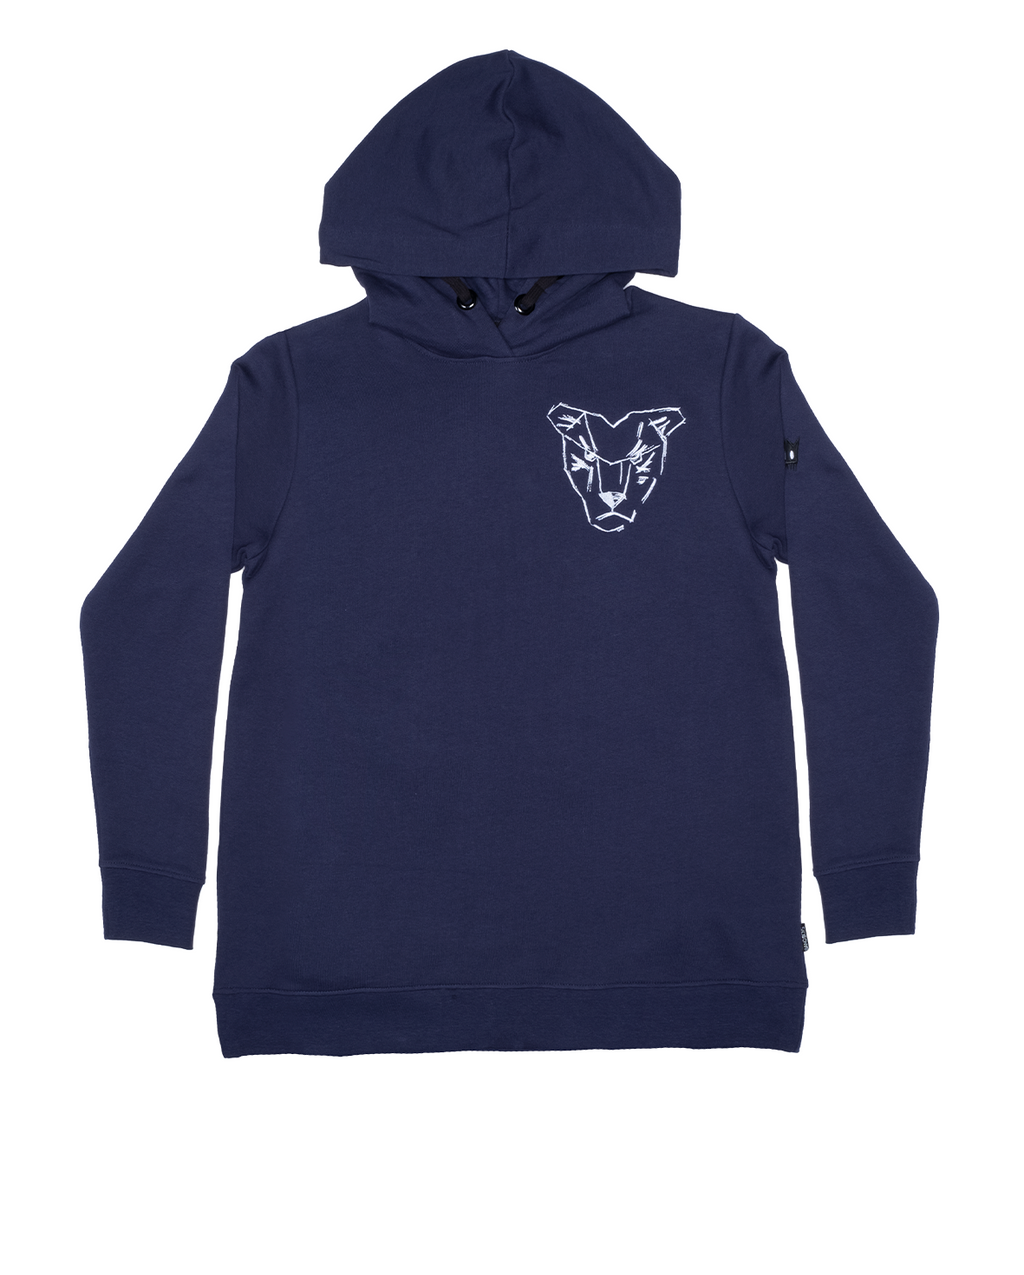 Band of Boys - Lioness A-line Hood Crew - Navy